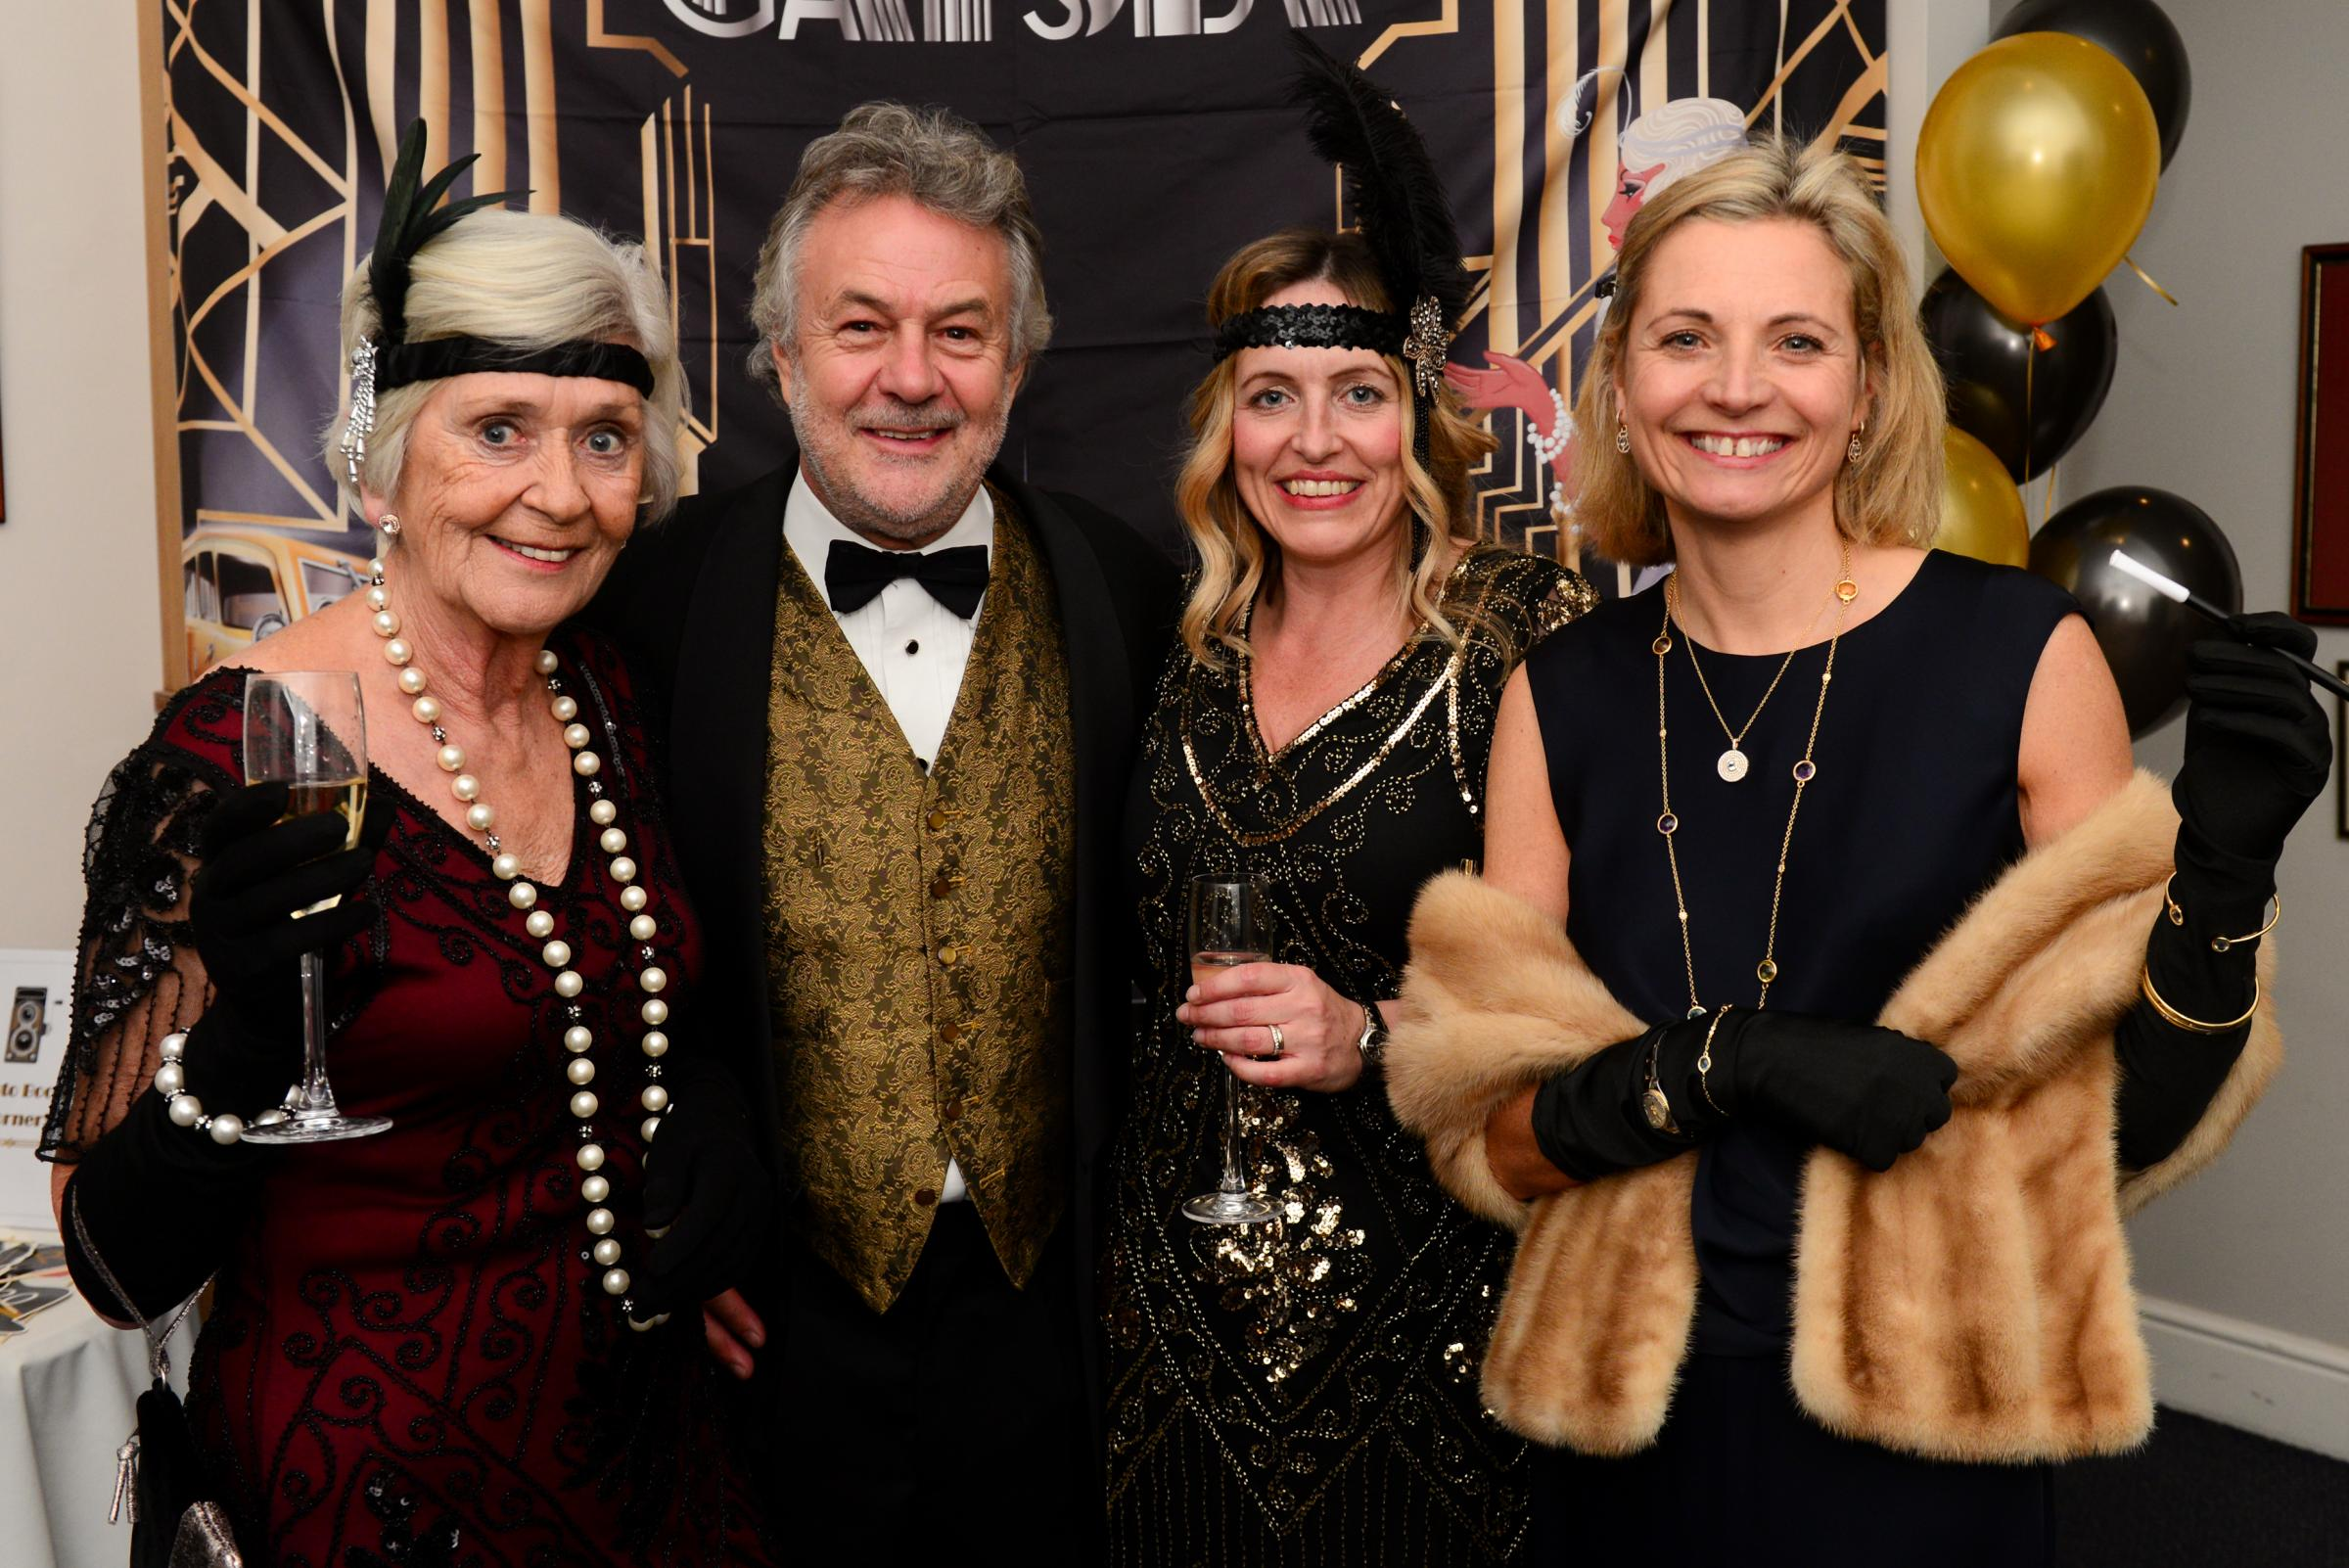 JAZZ UP YOUR JANUARY AT THE 1920s GATSBY GALA ON JAN. 18! 9